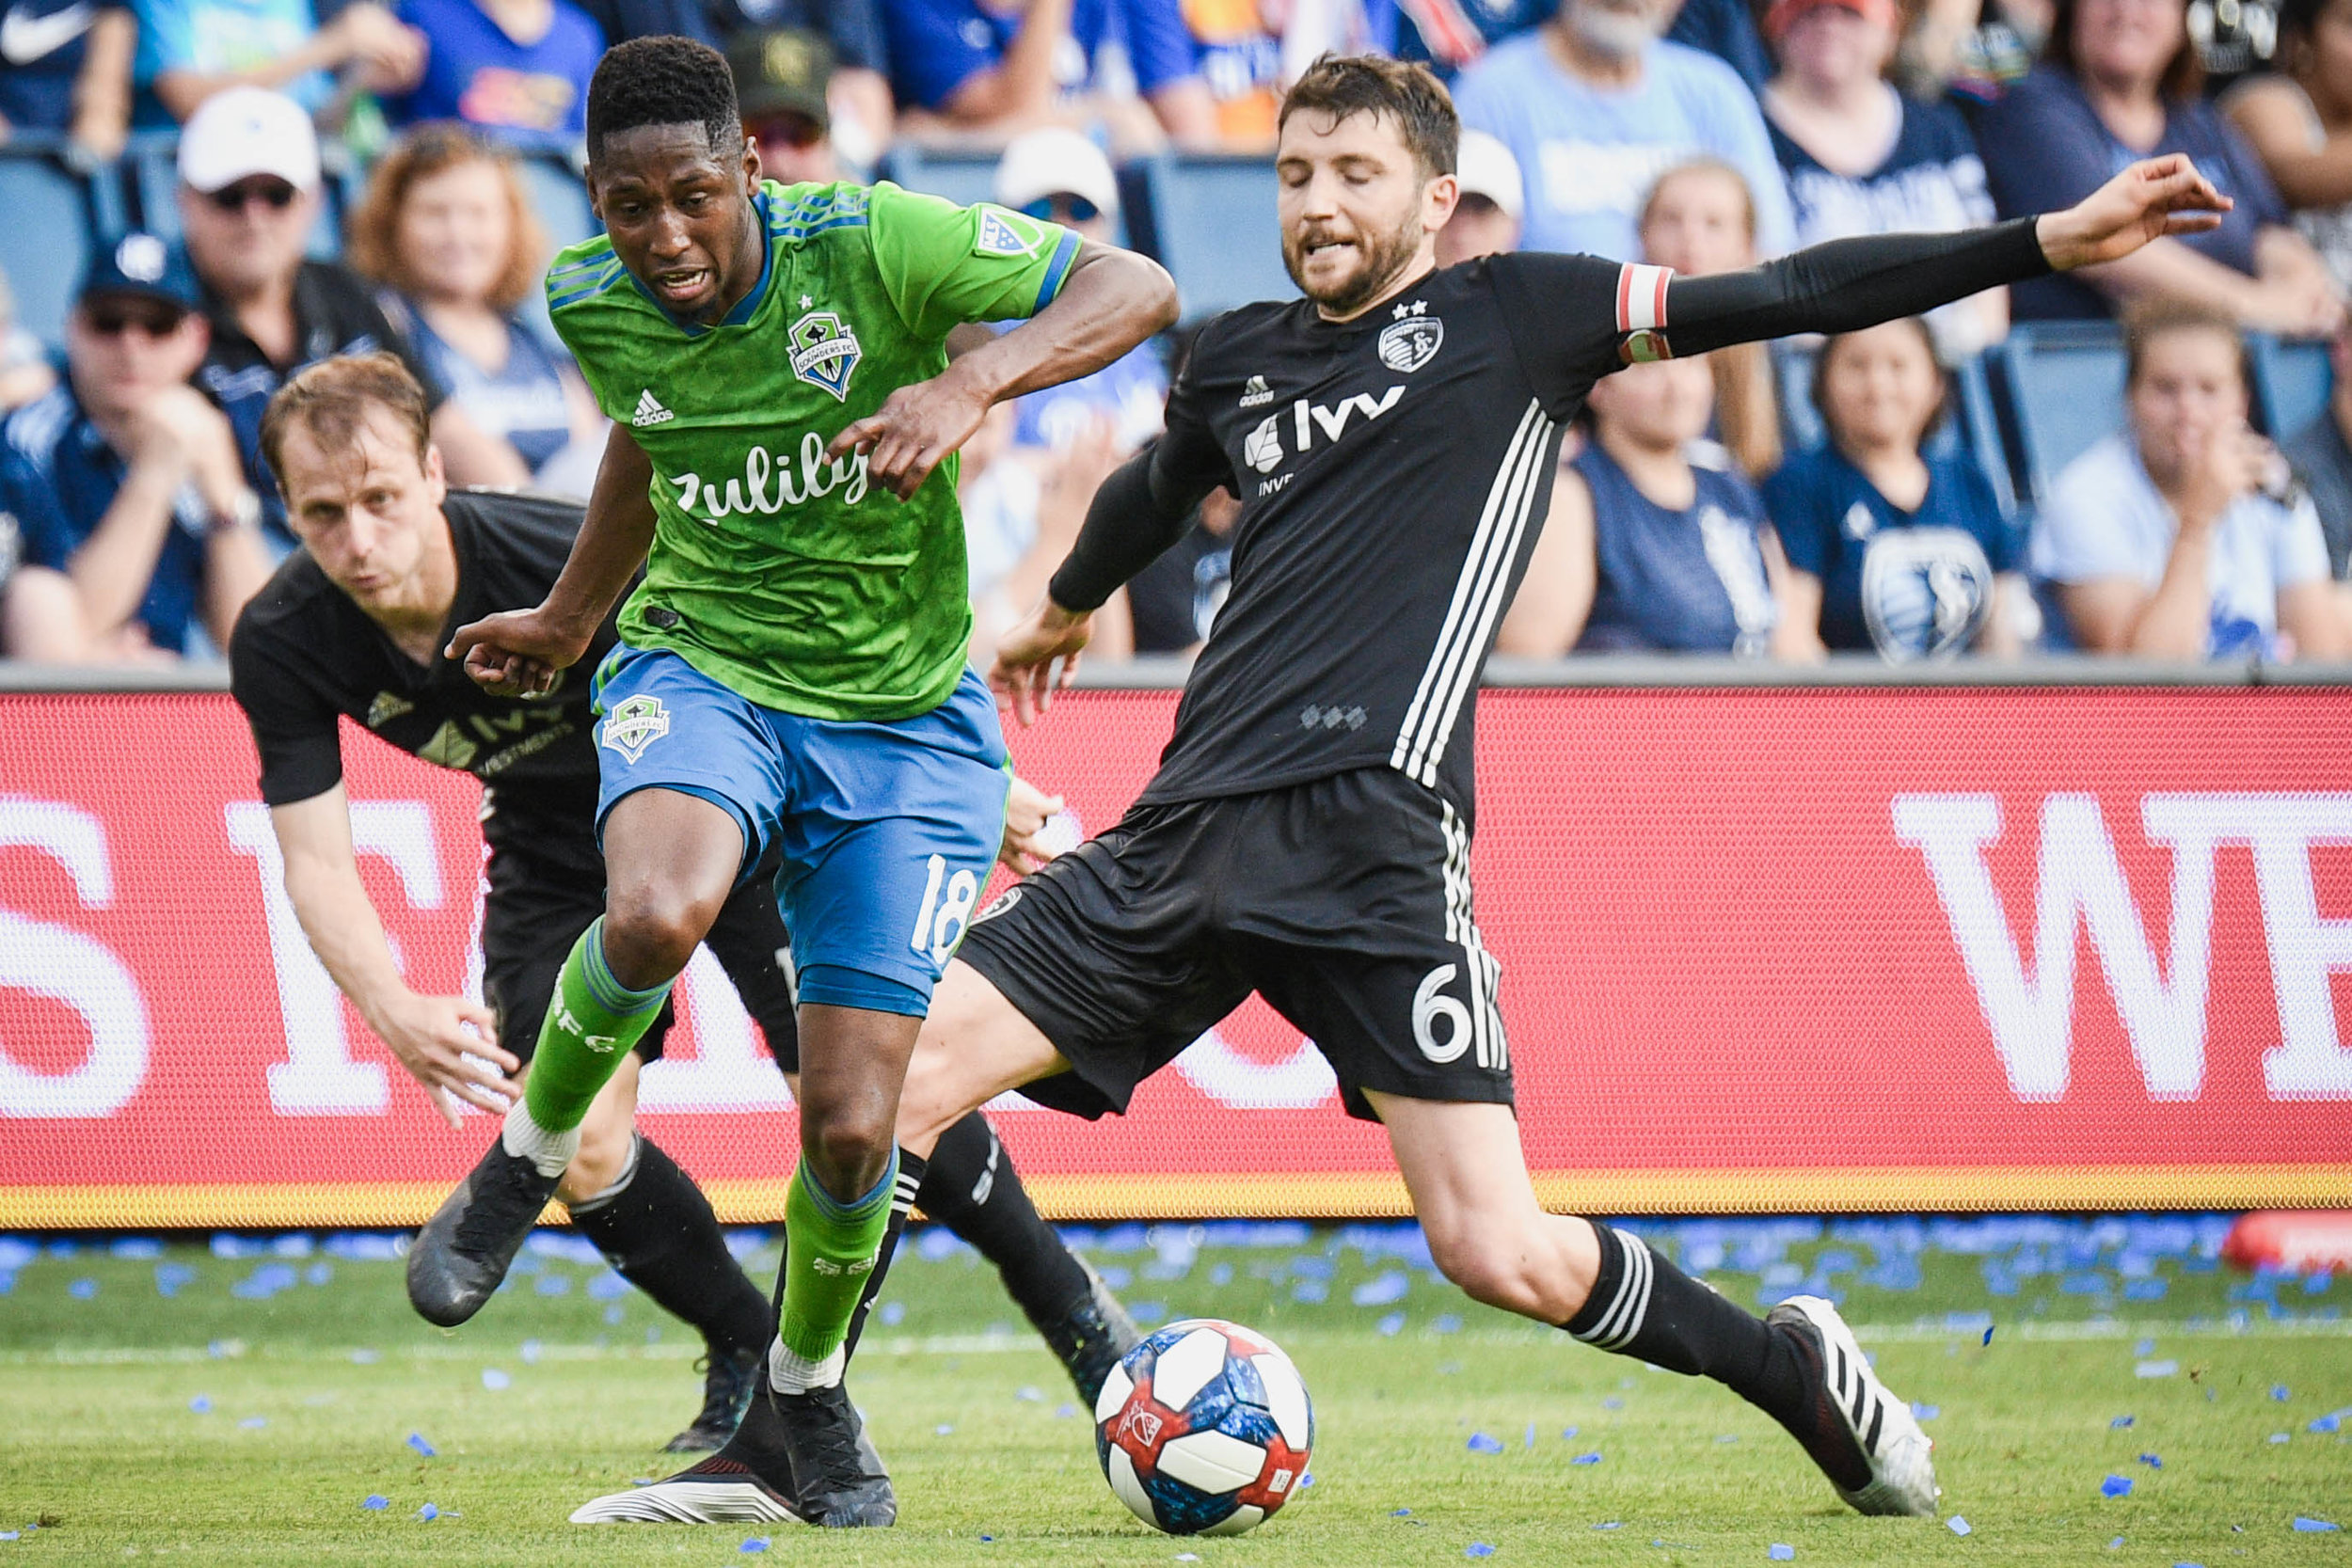 Kelvin Leerdam (18) dribbles the ball during Seattle Sounders FC match against Sporting Kansas City on Sunday, May 26, 2019 at Children's Mercy Park in Kansas City, Kansas. Sporting defeated the Sounders 3-2. (Photo by: Noah Riffe)